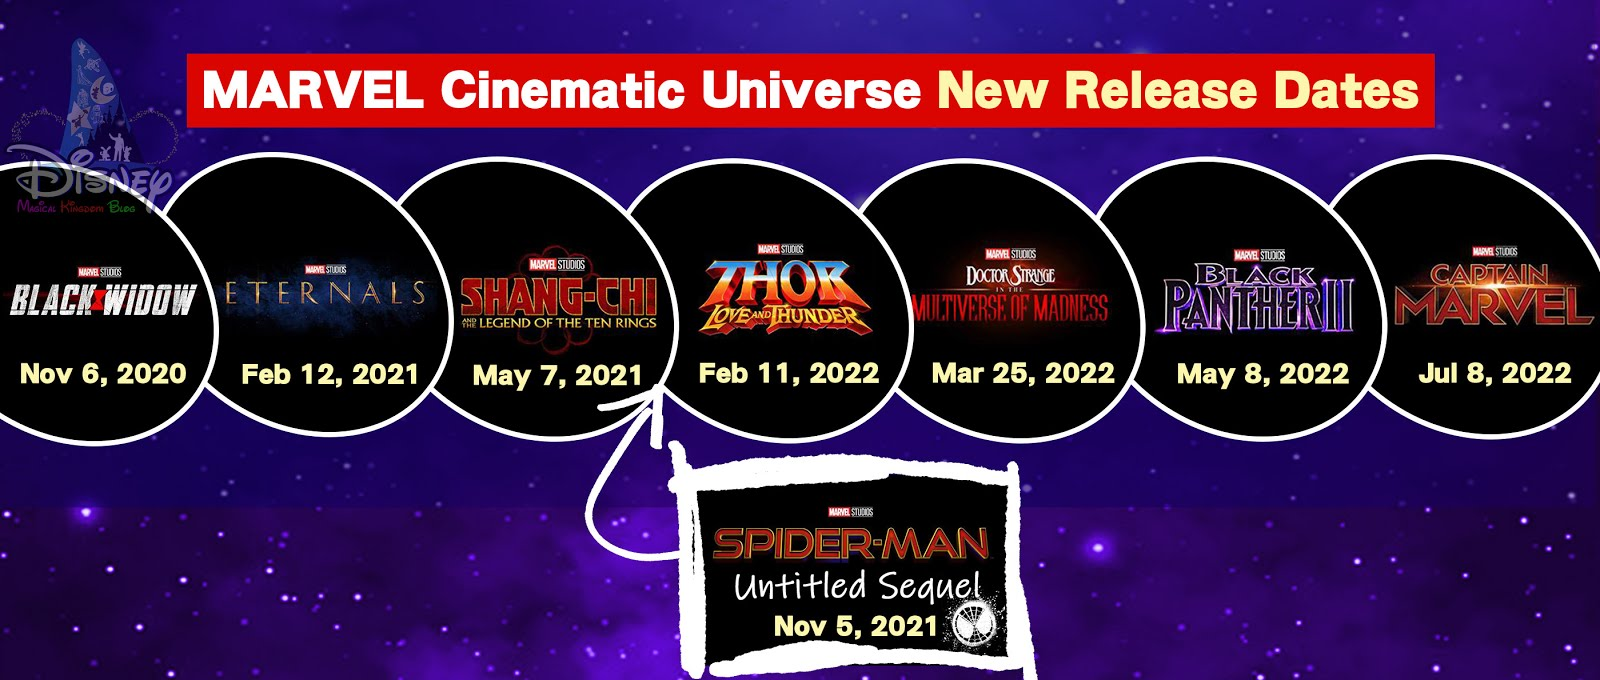 mcu new release dates, Marvel Studios, Phase 4 movies, Black Widow Delay